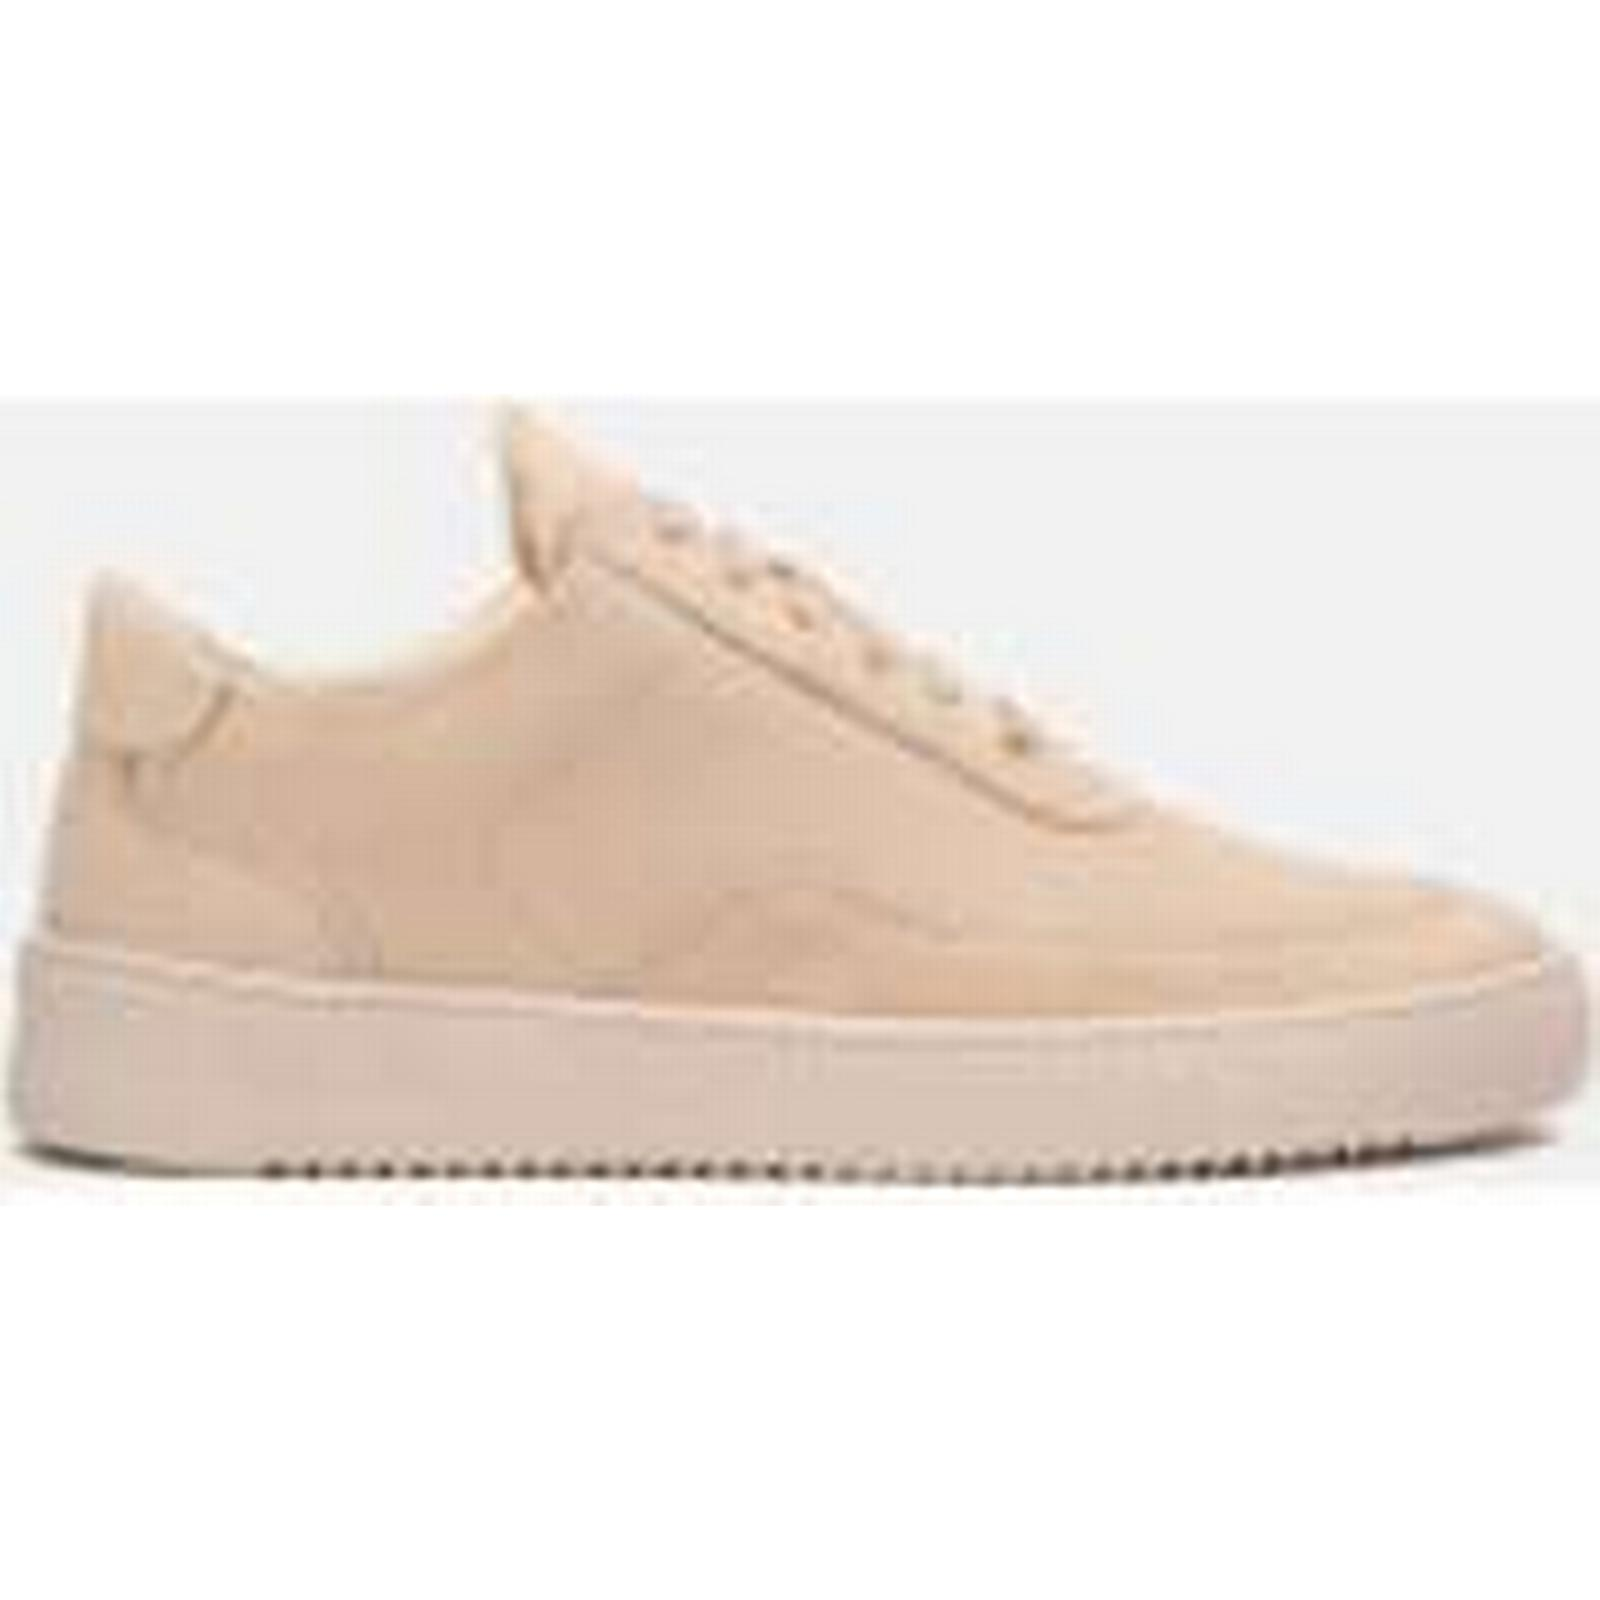 Filling Pieces Mondo Ripple Low Top Trainers - 3 All Nude - UK 3 - - Nude 15aa8f